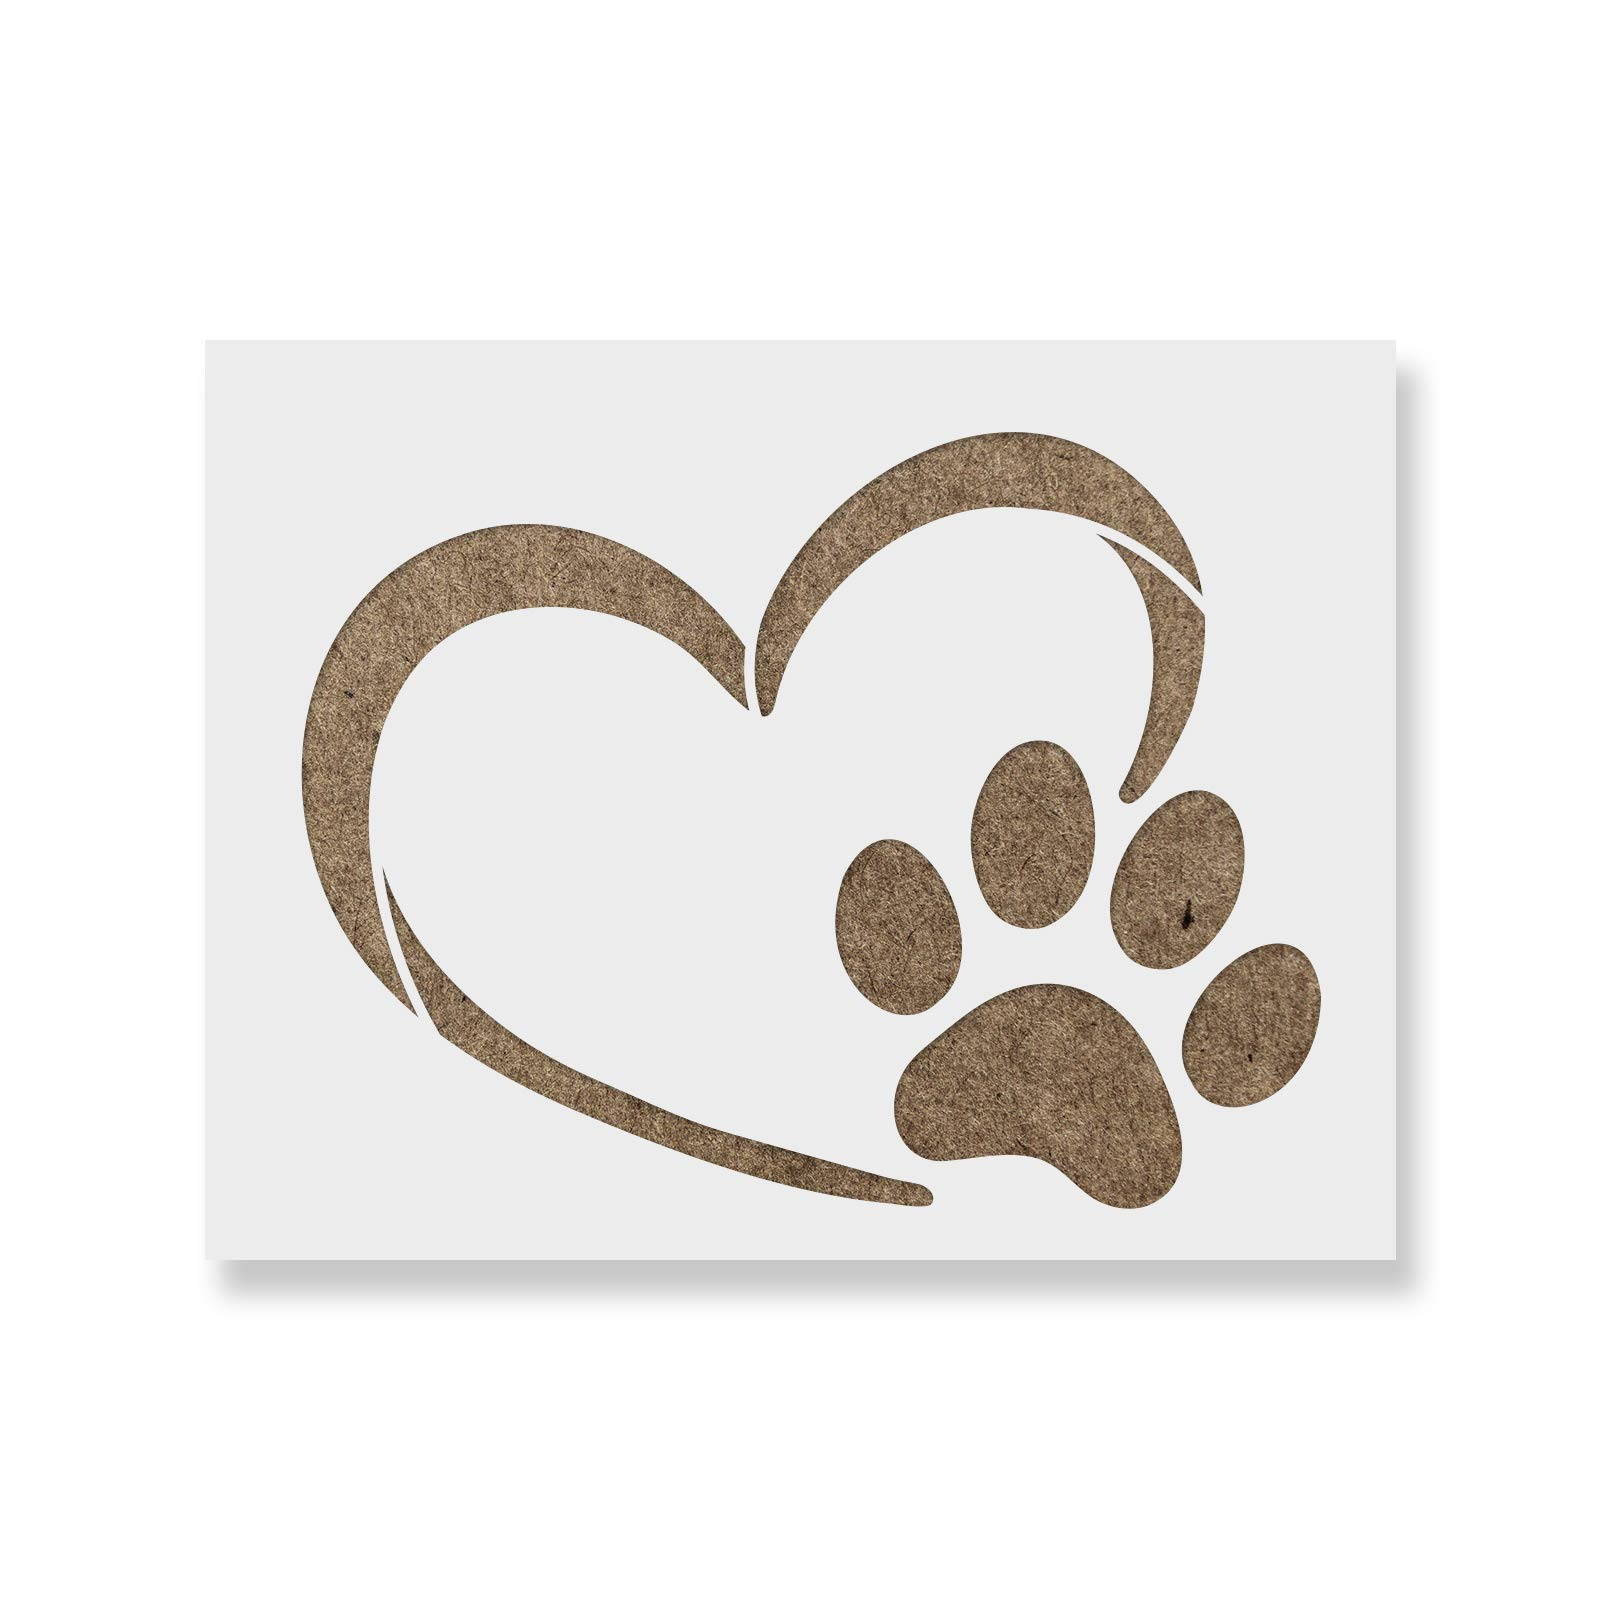 Heart Paw Stencil Template for Walls and Crafts - Reusable Stencils for Painting in Small & Large Sizes